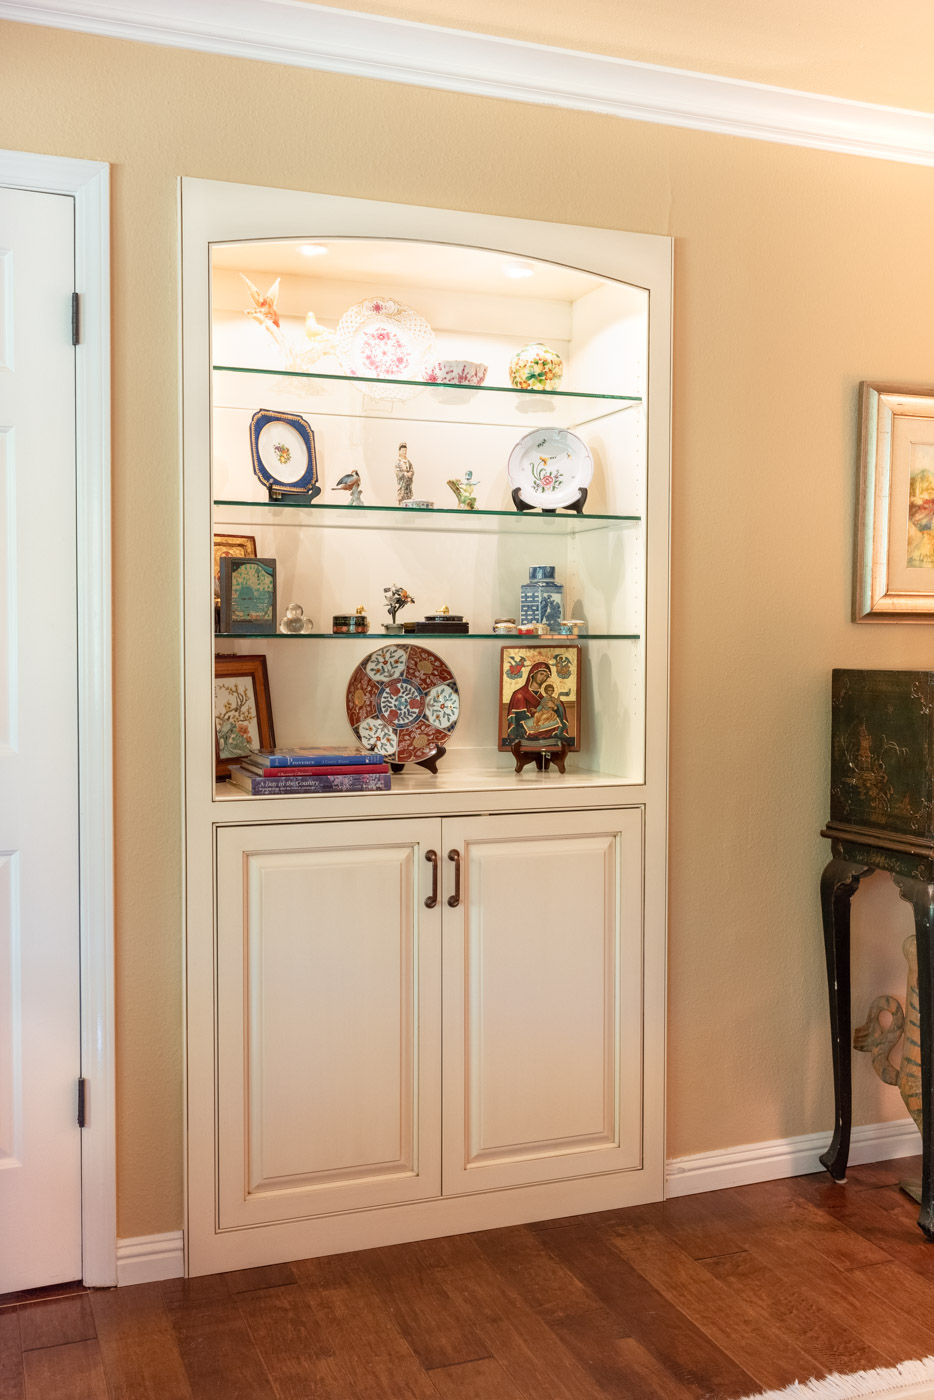 English Country Home custom living room built-in cabinet with glass display shelves